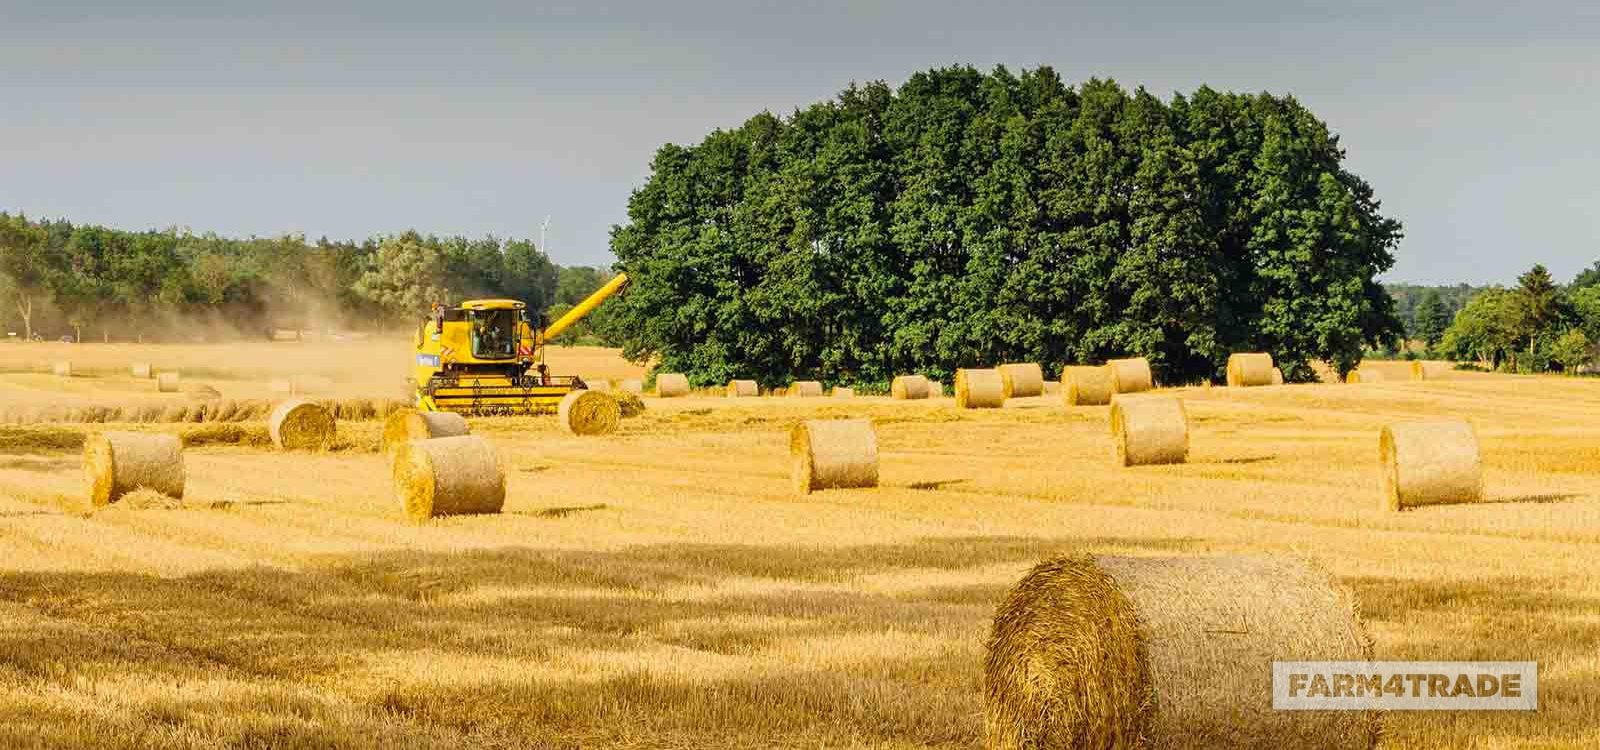 Agro-industrial by-products-Farm4Trade